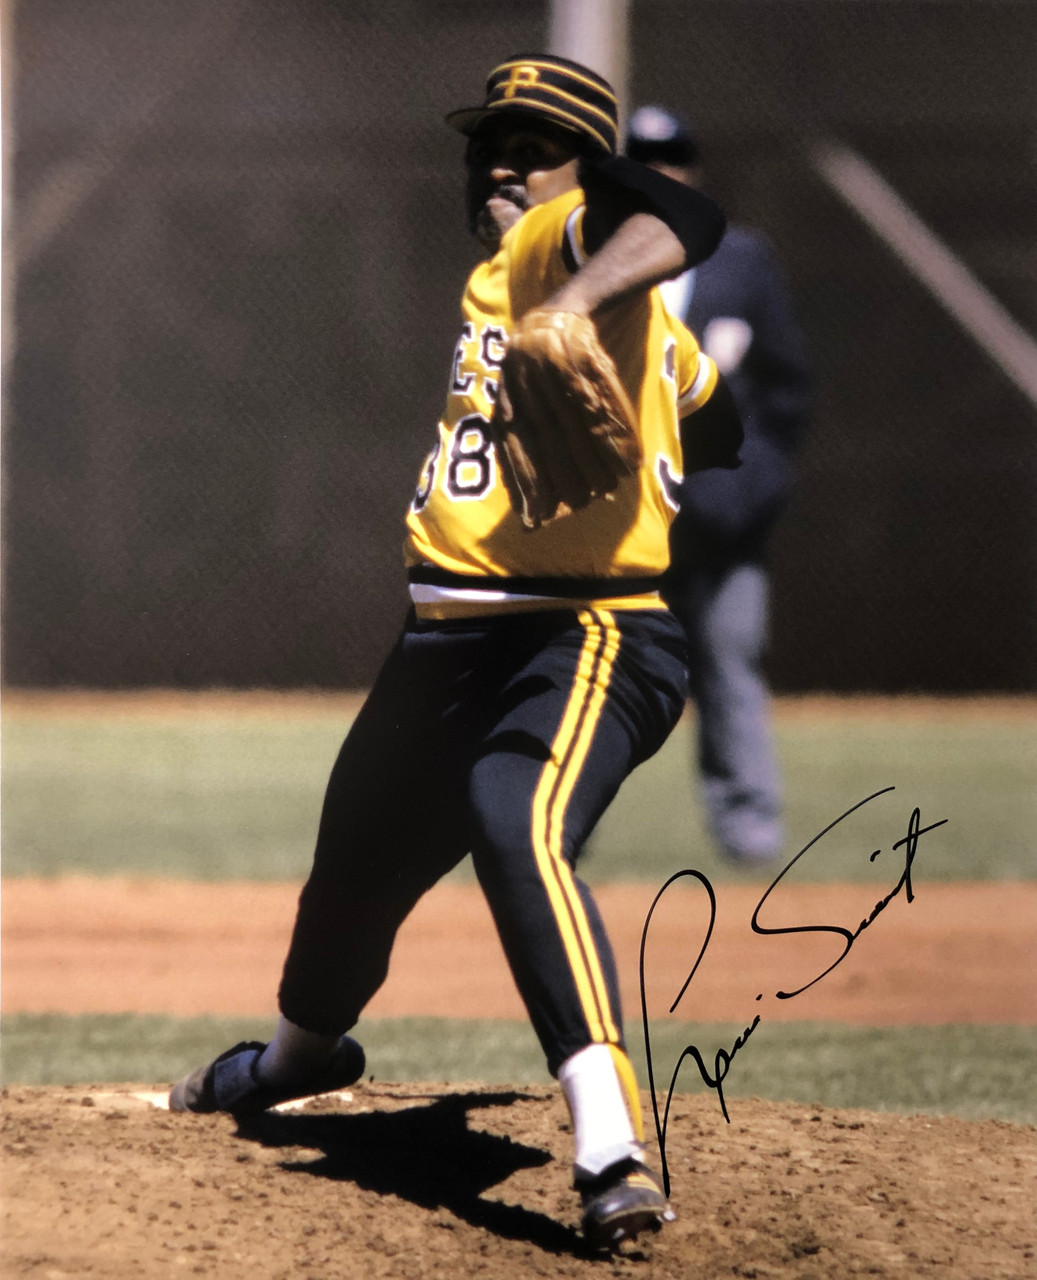 Louis Tiant Pittsburgh Pirates 16-1 16x20 Autographed Photo - Certified Authentic